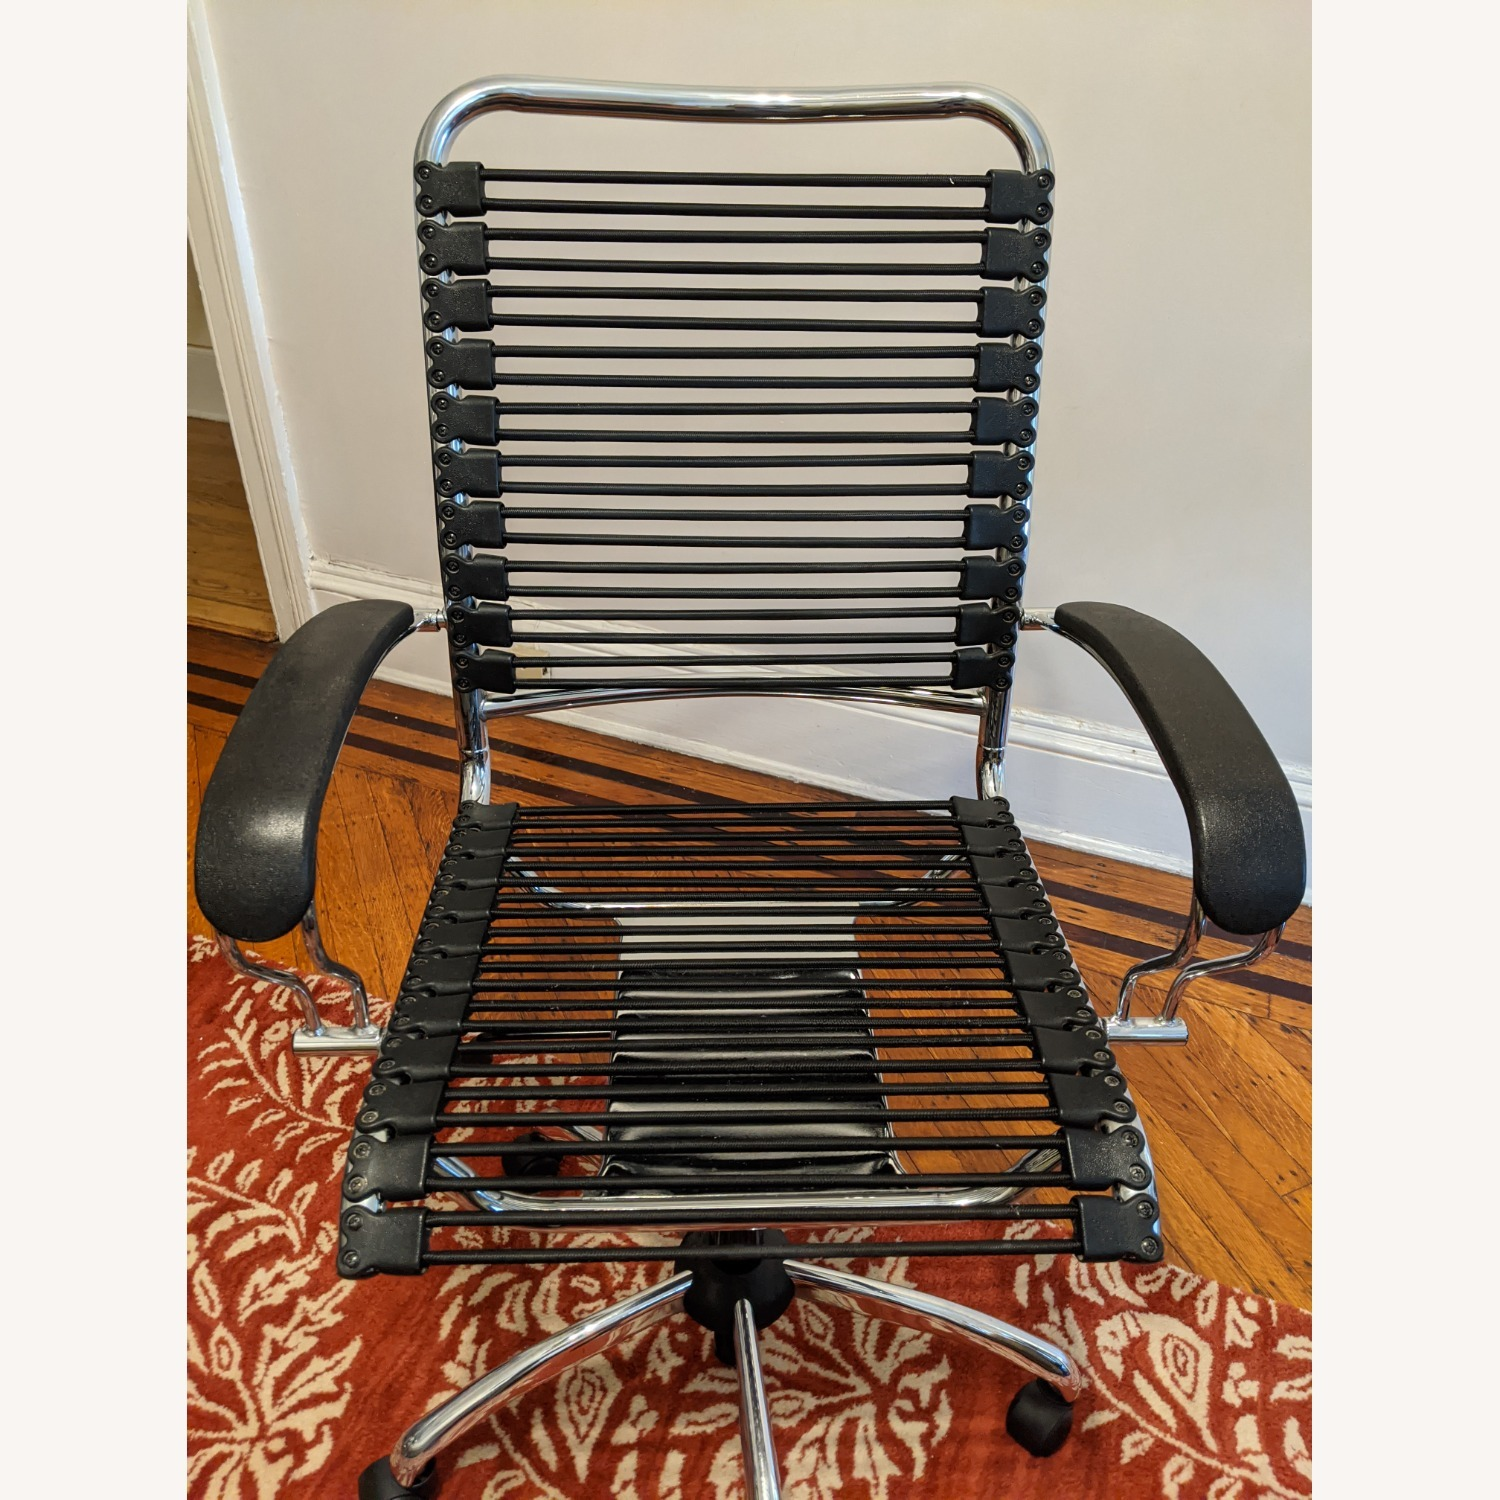 Modern Bungee Desk Chairs with Chrome Accents - image-2